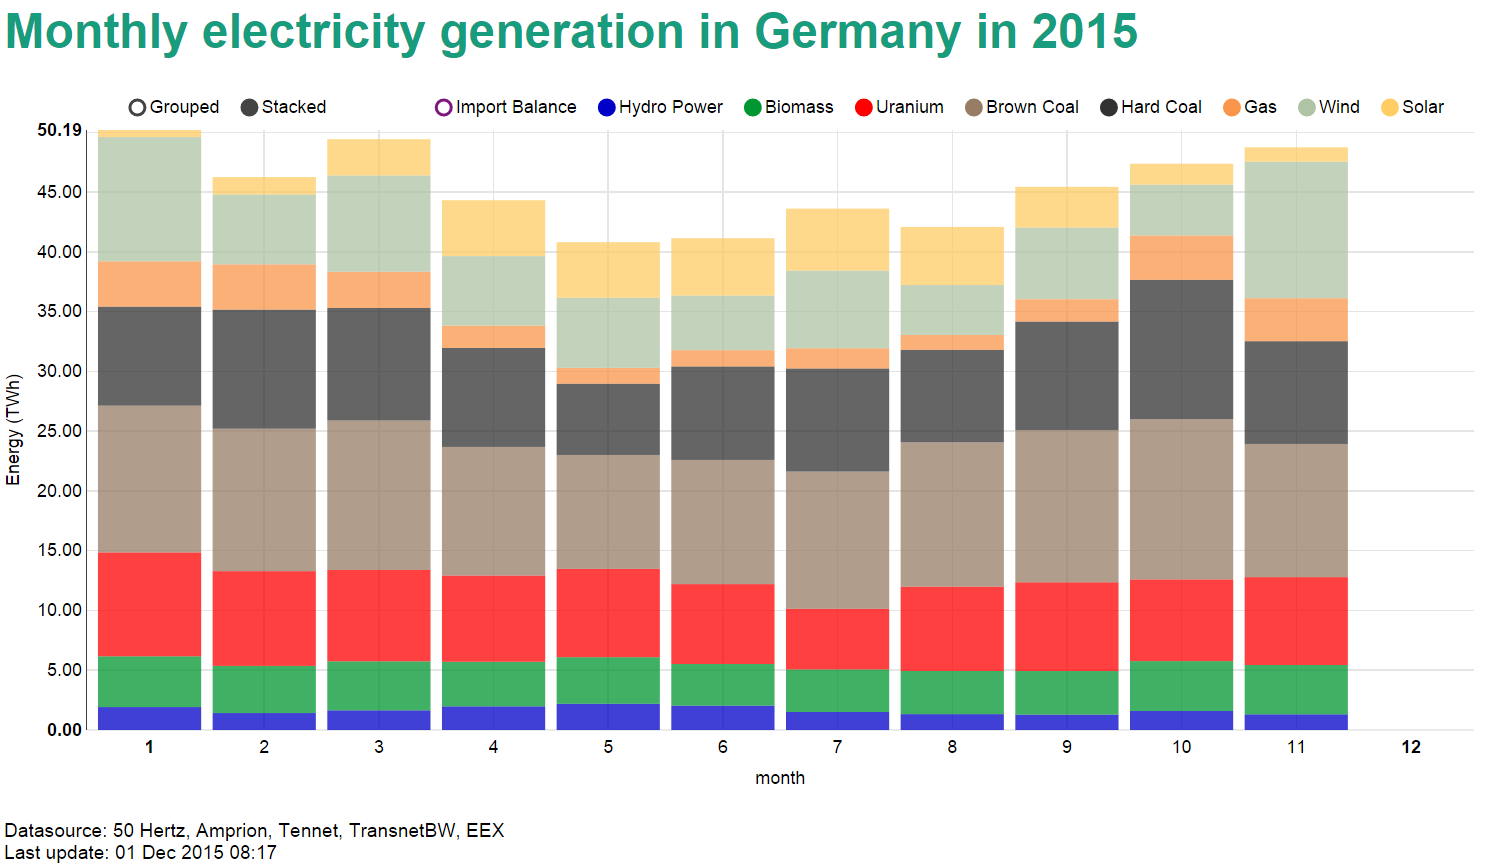 Monthly power generation in Germany in 2015